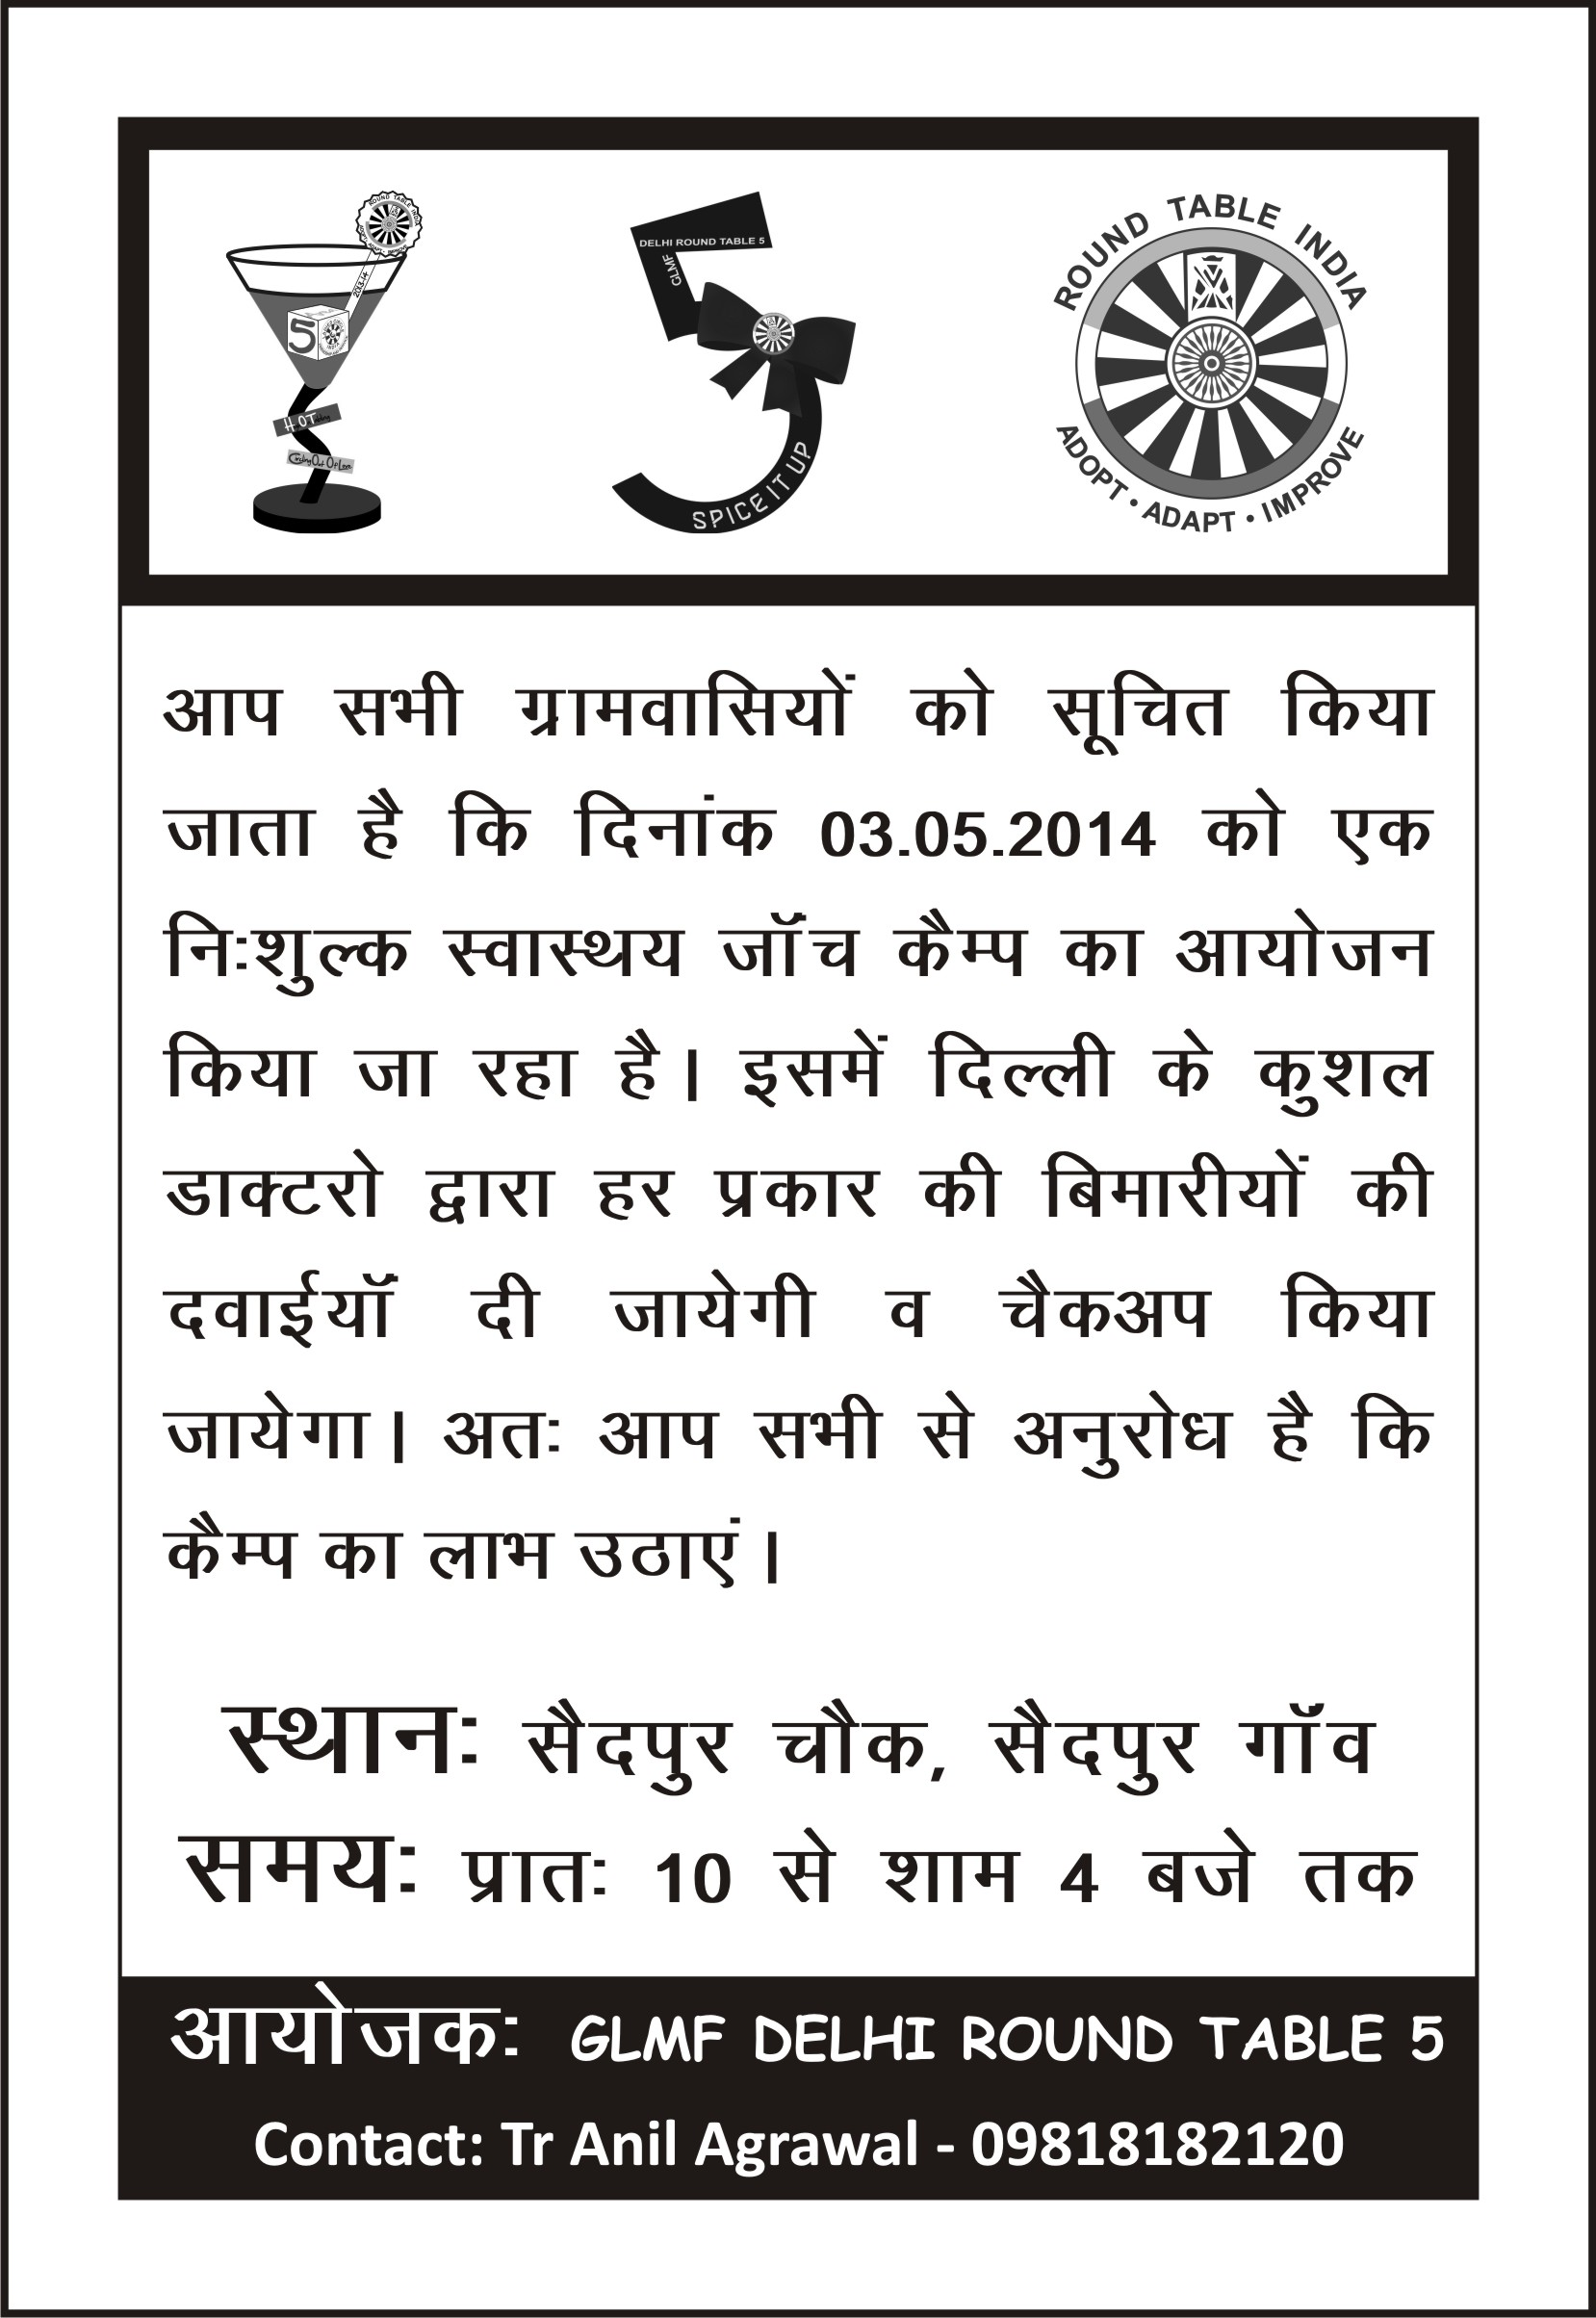 Invite for Free Health Check up Camp at Village Saidpur Sonepat on